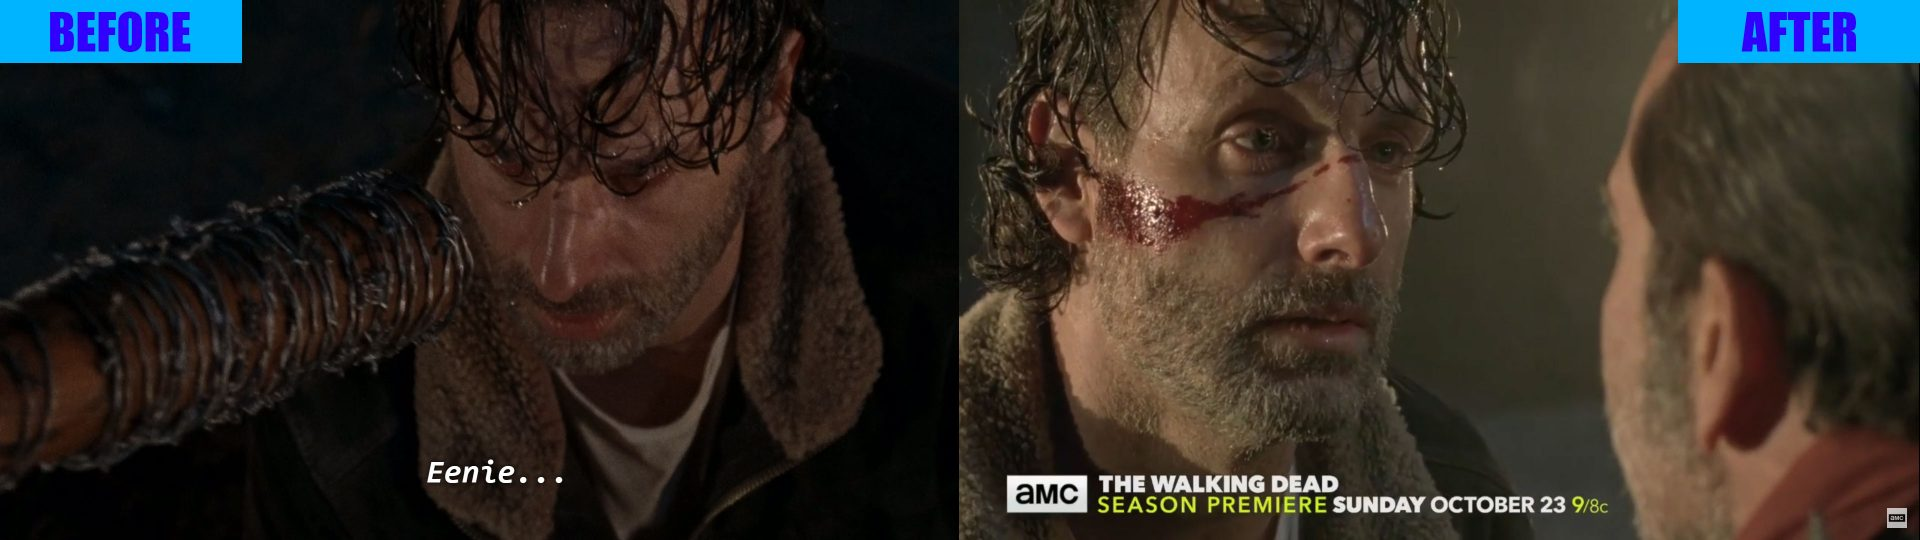 NYCC 2016: The Walking Dead Season 7 Negan Outcome Trailer